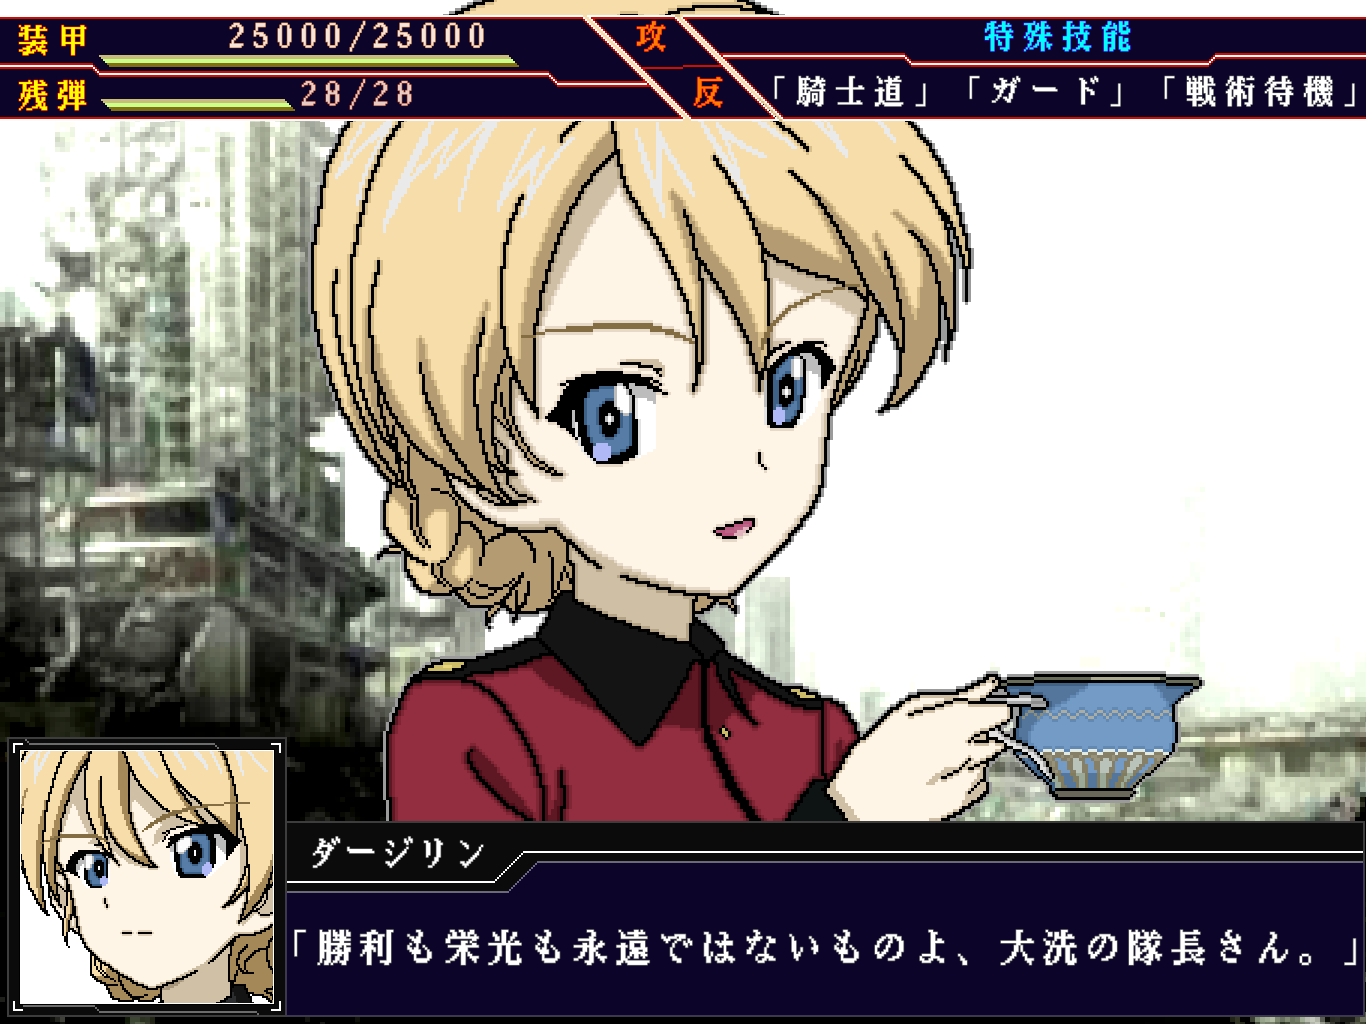 1girl bangs blonde_hair blue_eyes braid closed_mouth cup darjeeling_(girls_und_panzer) fake_screenshot frise girls_und_panzer holding holding_cup jacket long_sleeves looking_at_viewer military military_uniform open_mouth pixel_art red_jacket short_hair smile solo srw_battle_screen st._gloriana's_military_uniform super_robot_wars teacup tied_hair twin_braids uniform